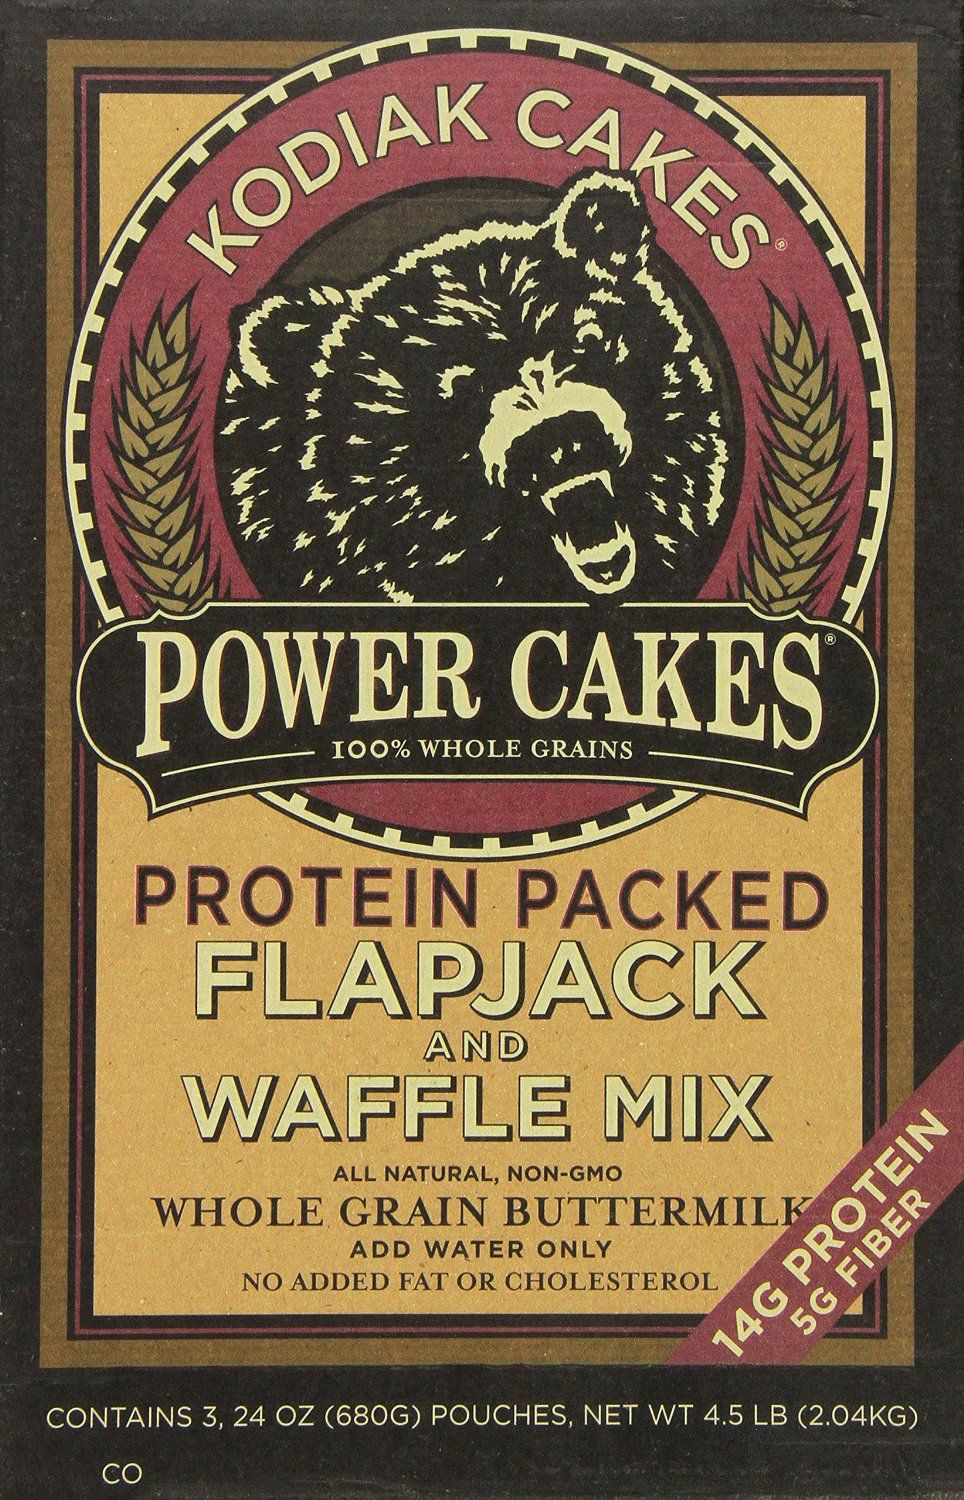 I tried this pancake mix this week after hearing great